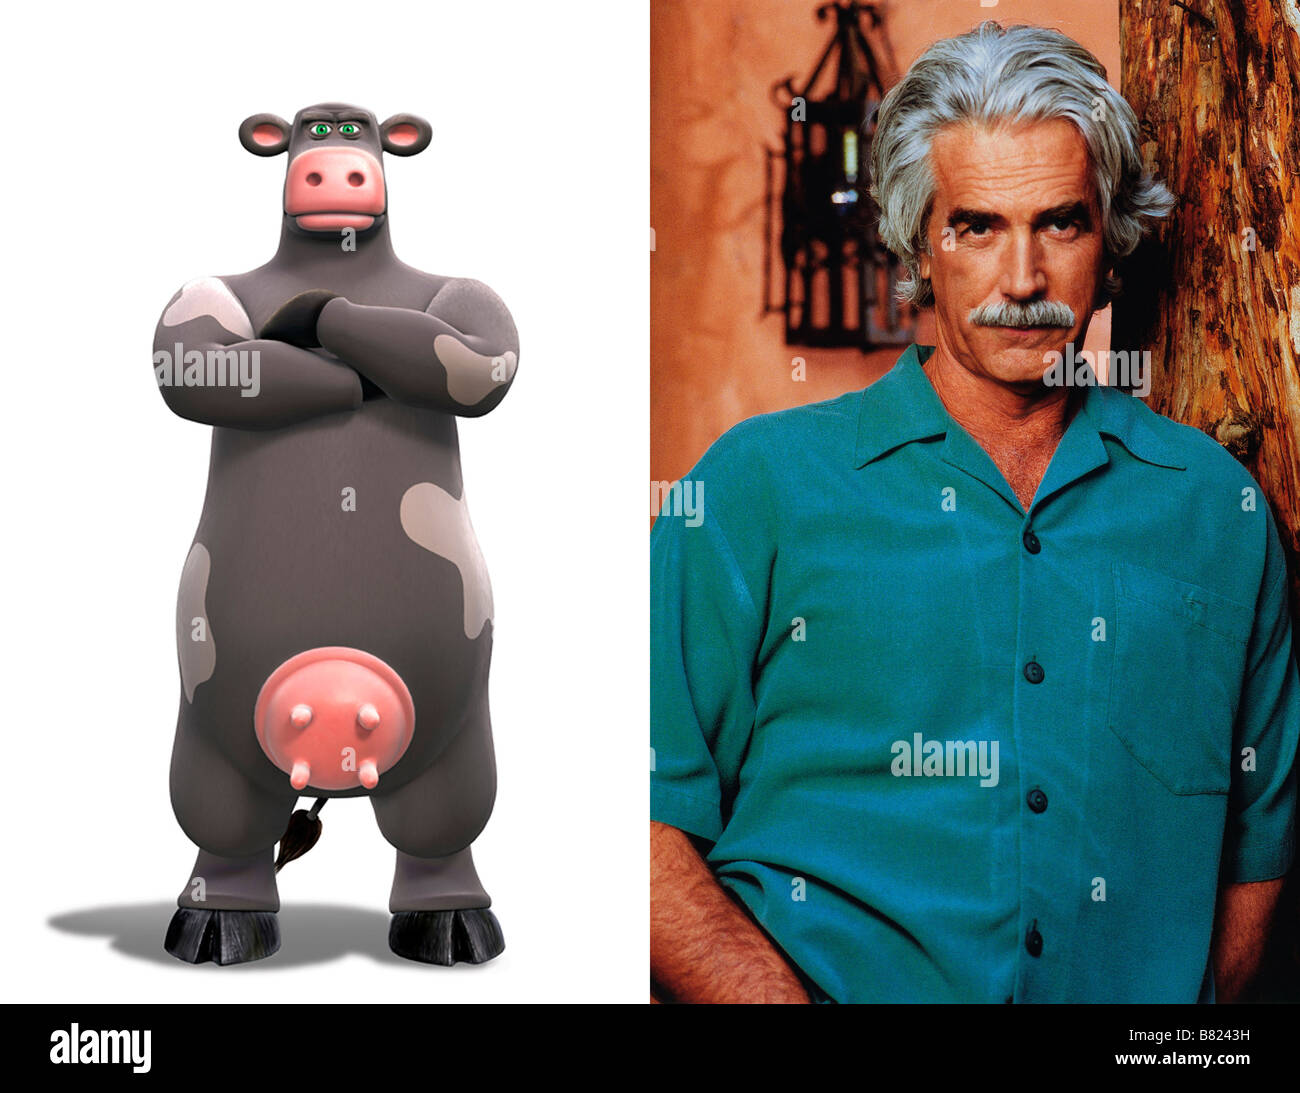 Sam elliott ben the cow voice dans la ferme en folie barnyard 2006 stock photo royalty free - Vache en folie ...